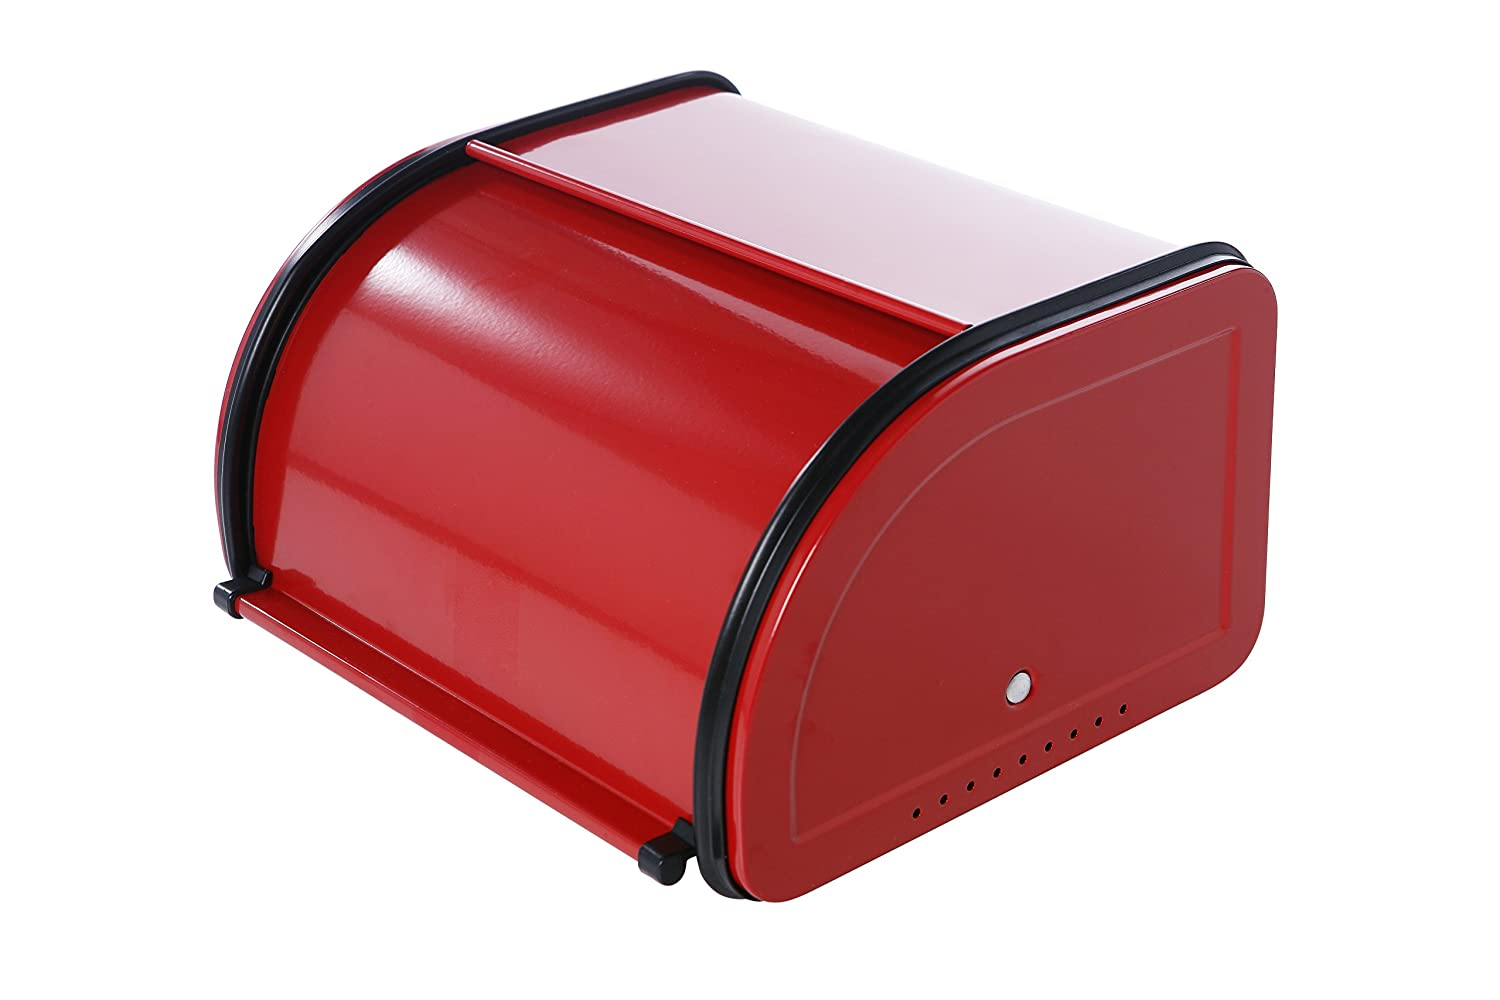 Bread Box For Kitchen Counter - Stainless Steel Bread Bin Storage Container with Roll Top Lid for Loaves, Pastries, and More - Retro/Vintage Inspired Design, Red, 10 x 8.5 x 5.5 Inches